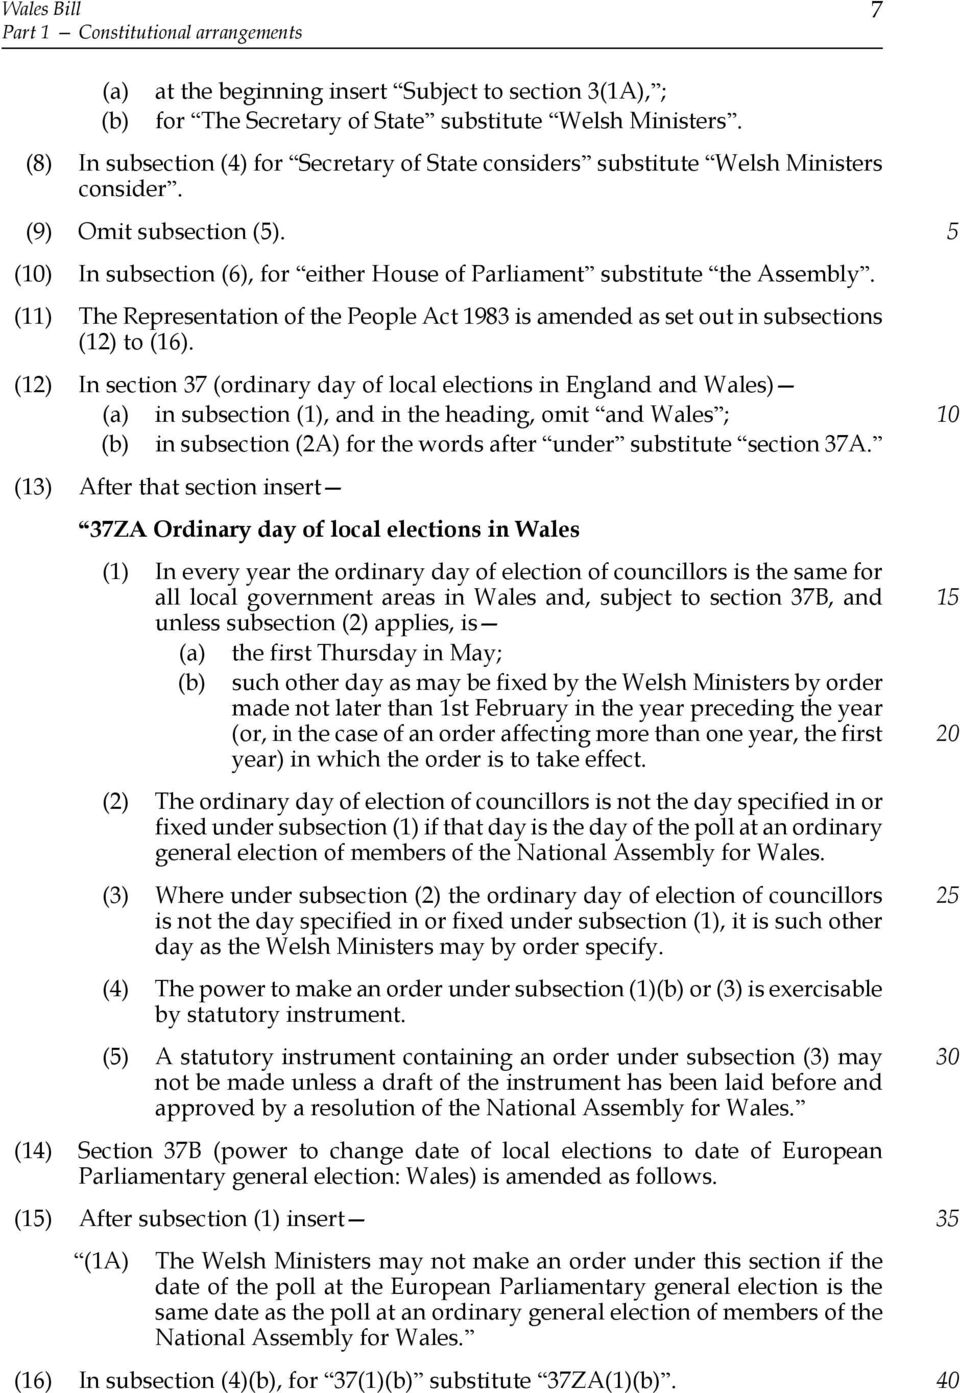 (11) The Representation of the People Act 1983 is amended as set out in subsections (12) to (16).